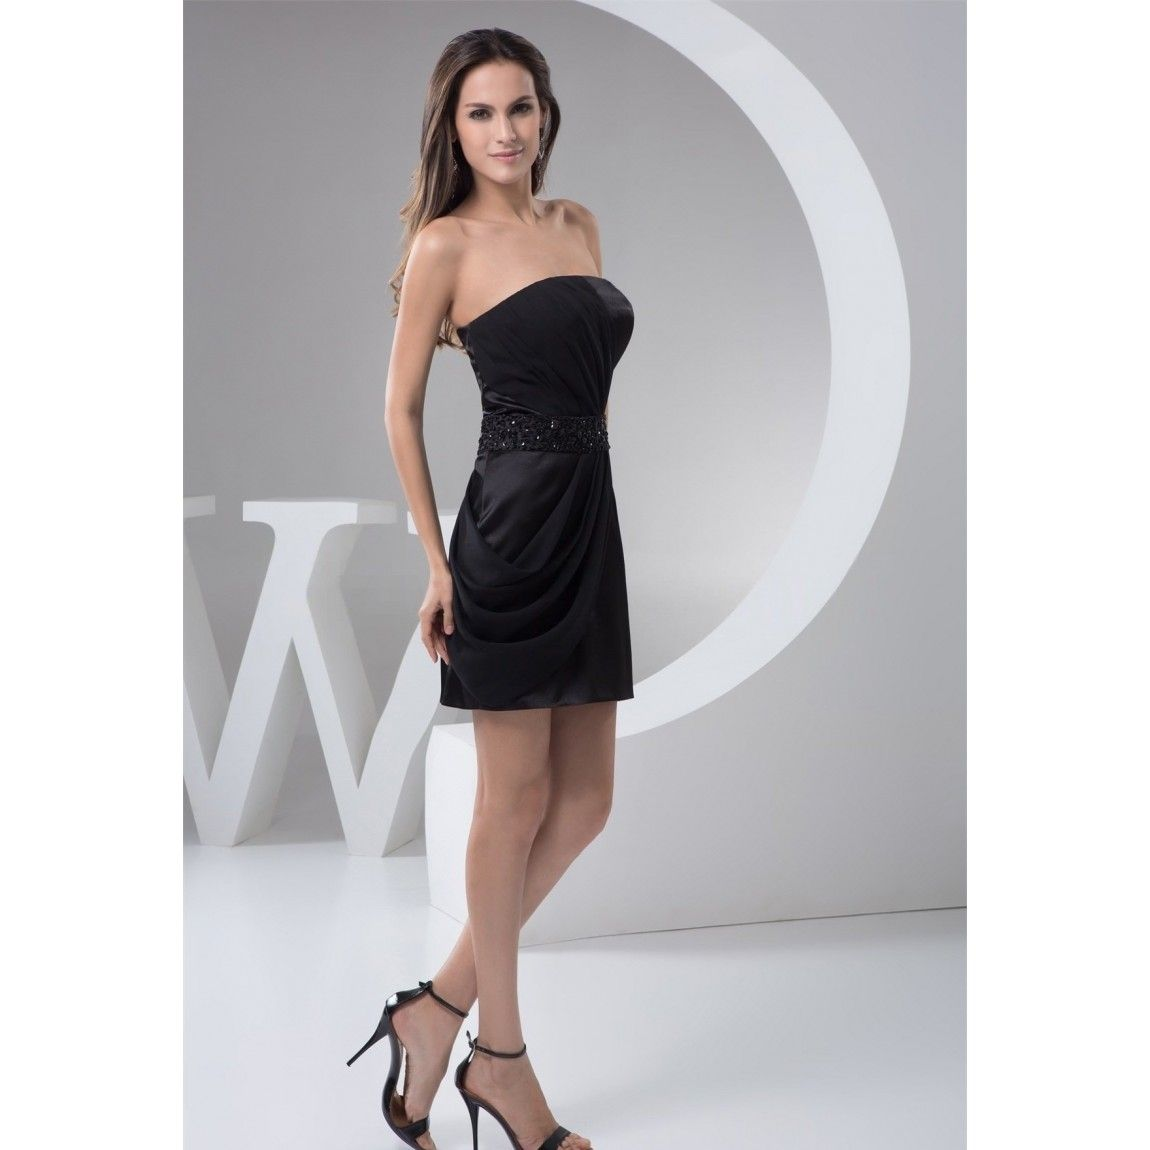 Strapless black satin cocktail dress | Color dress | Pinterest ...